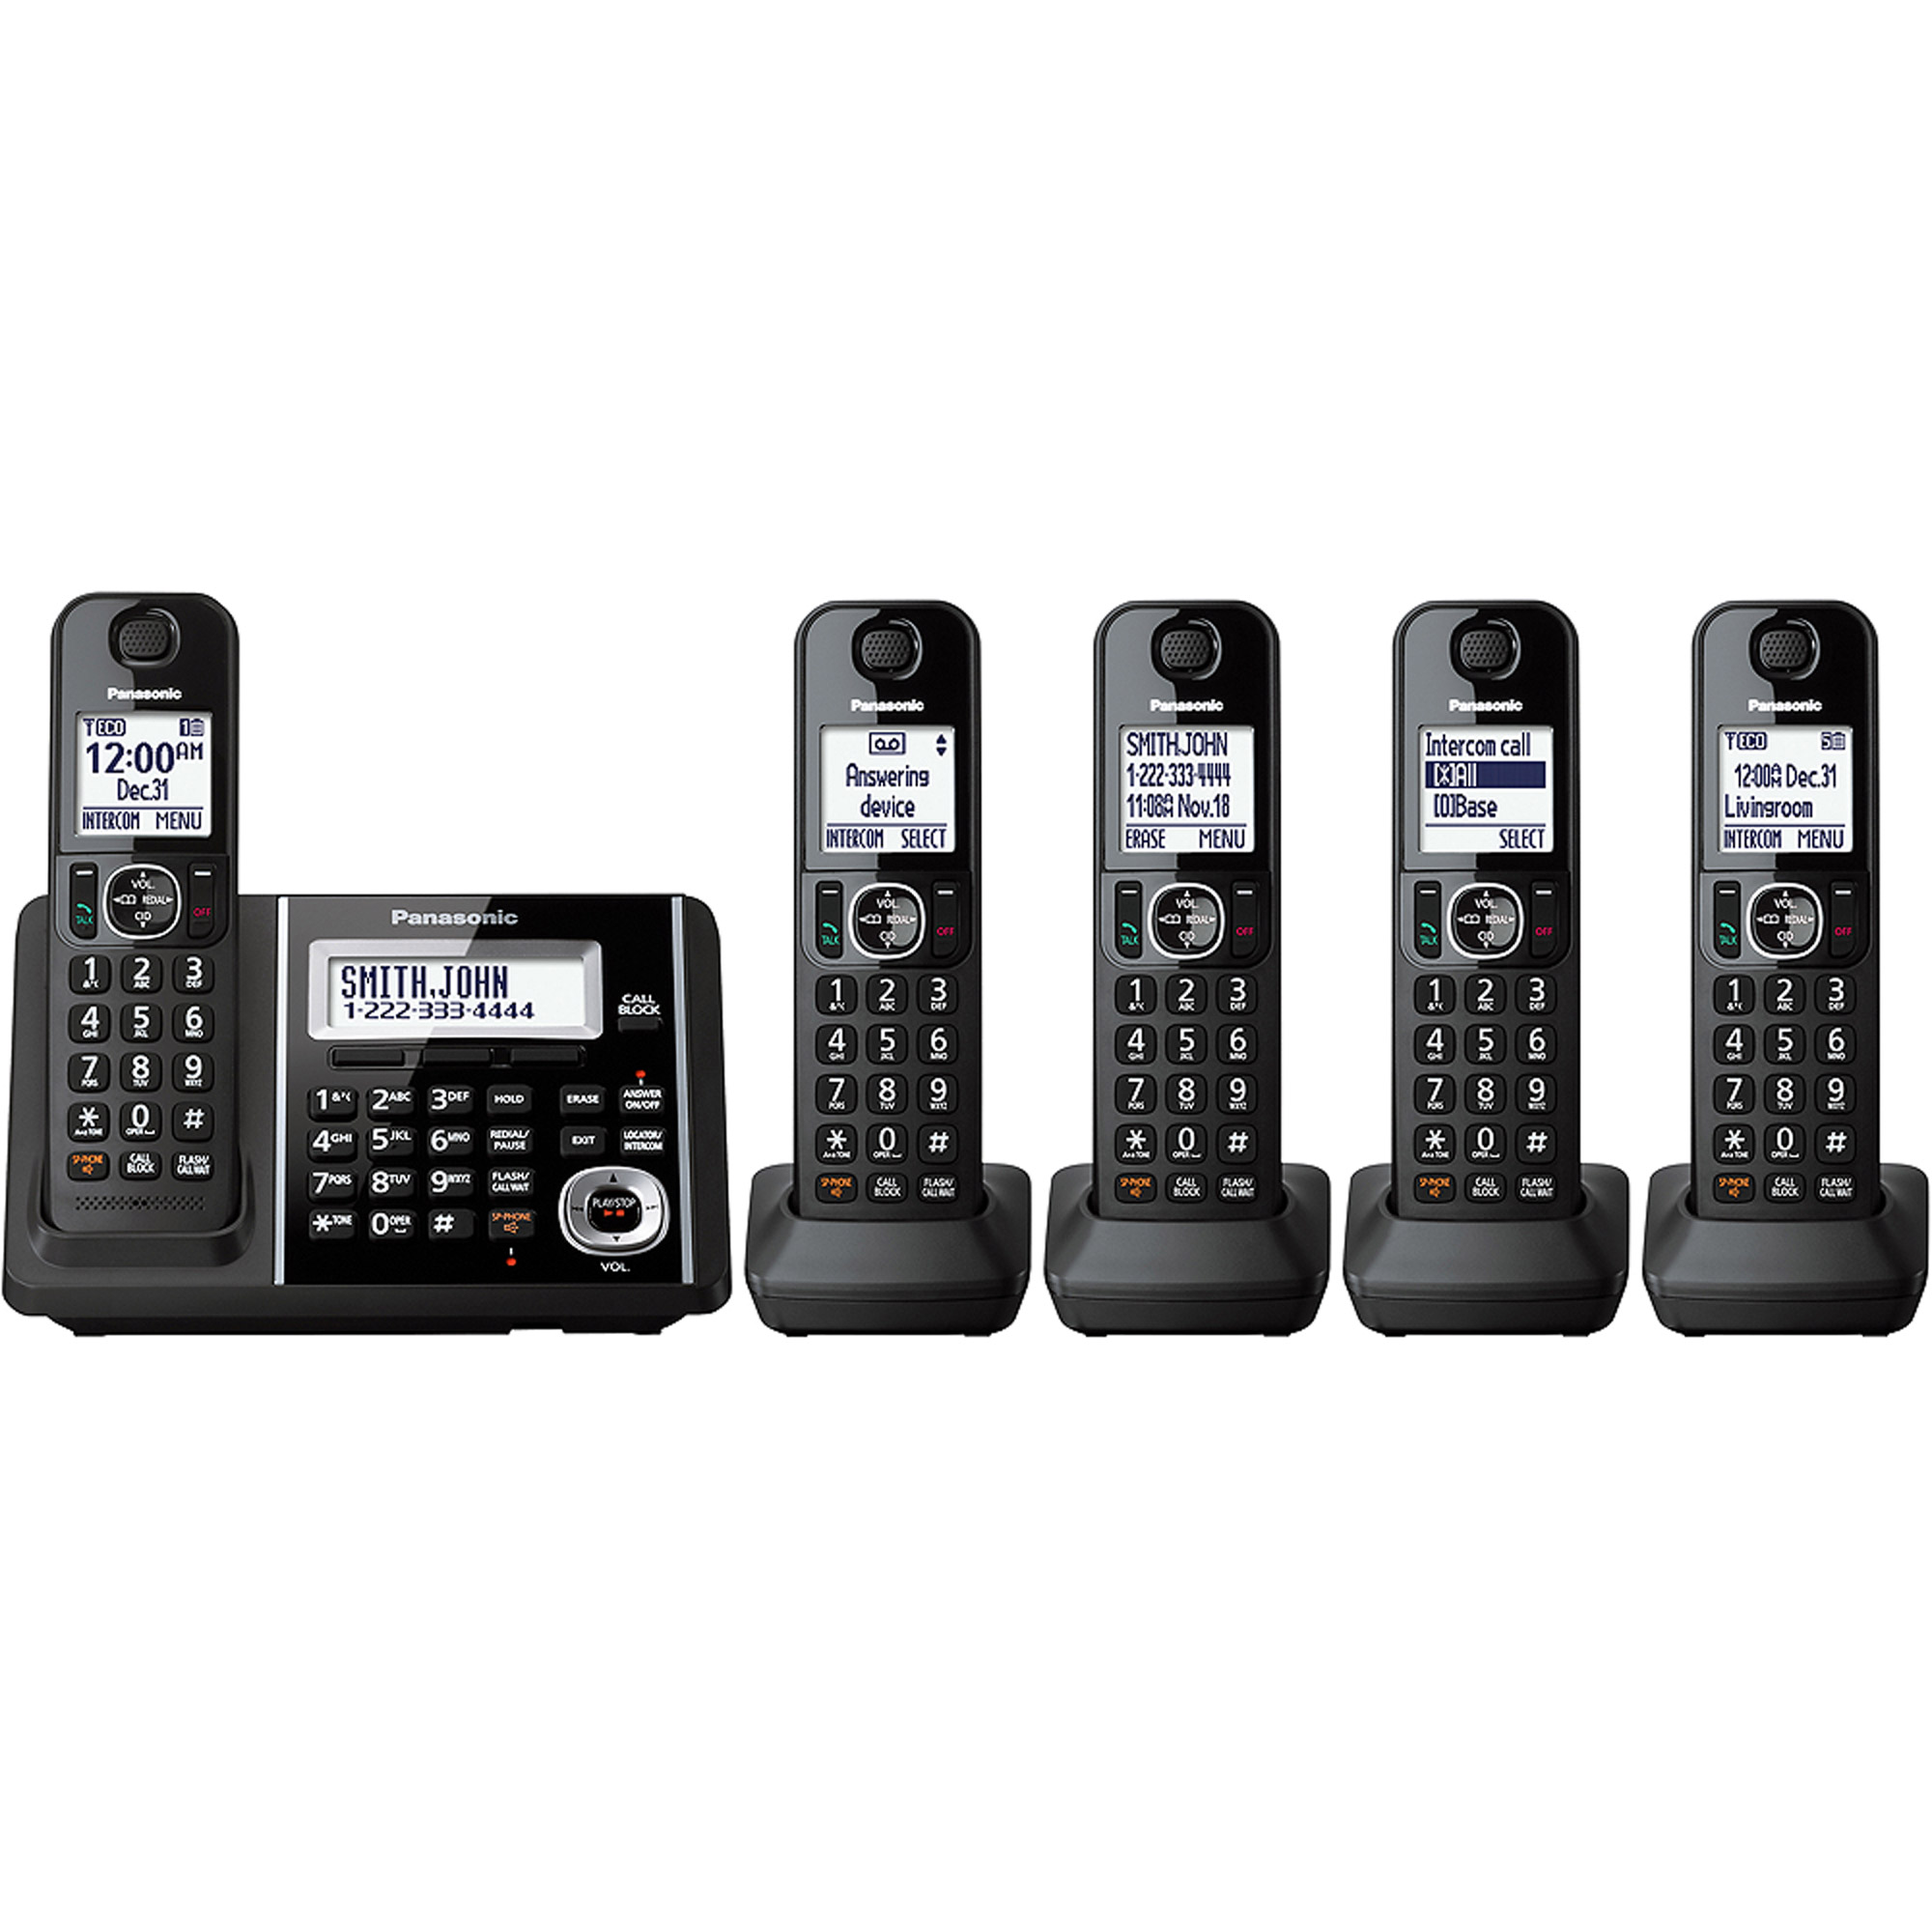 Panasonic Cordless Phone and Answering Machine with 5 Handsets by Panasonic